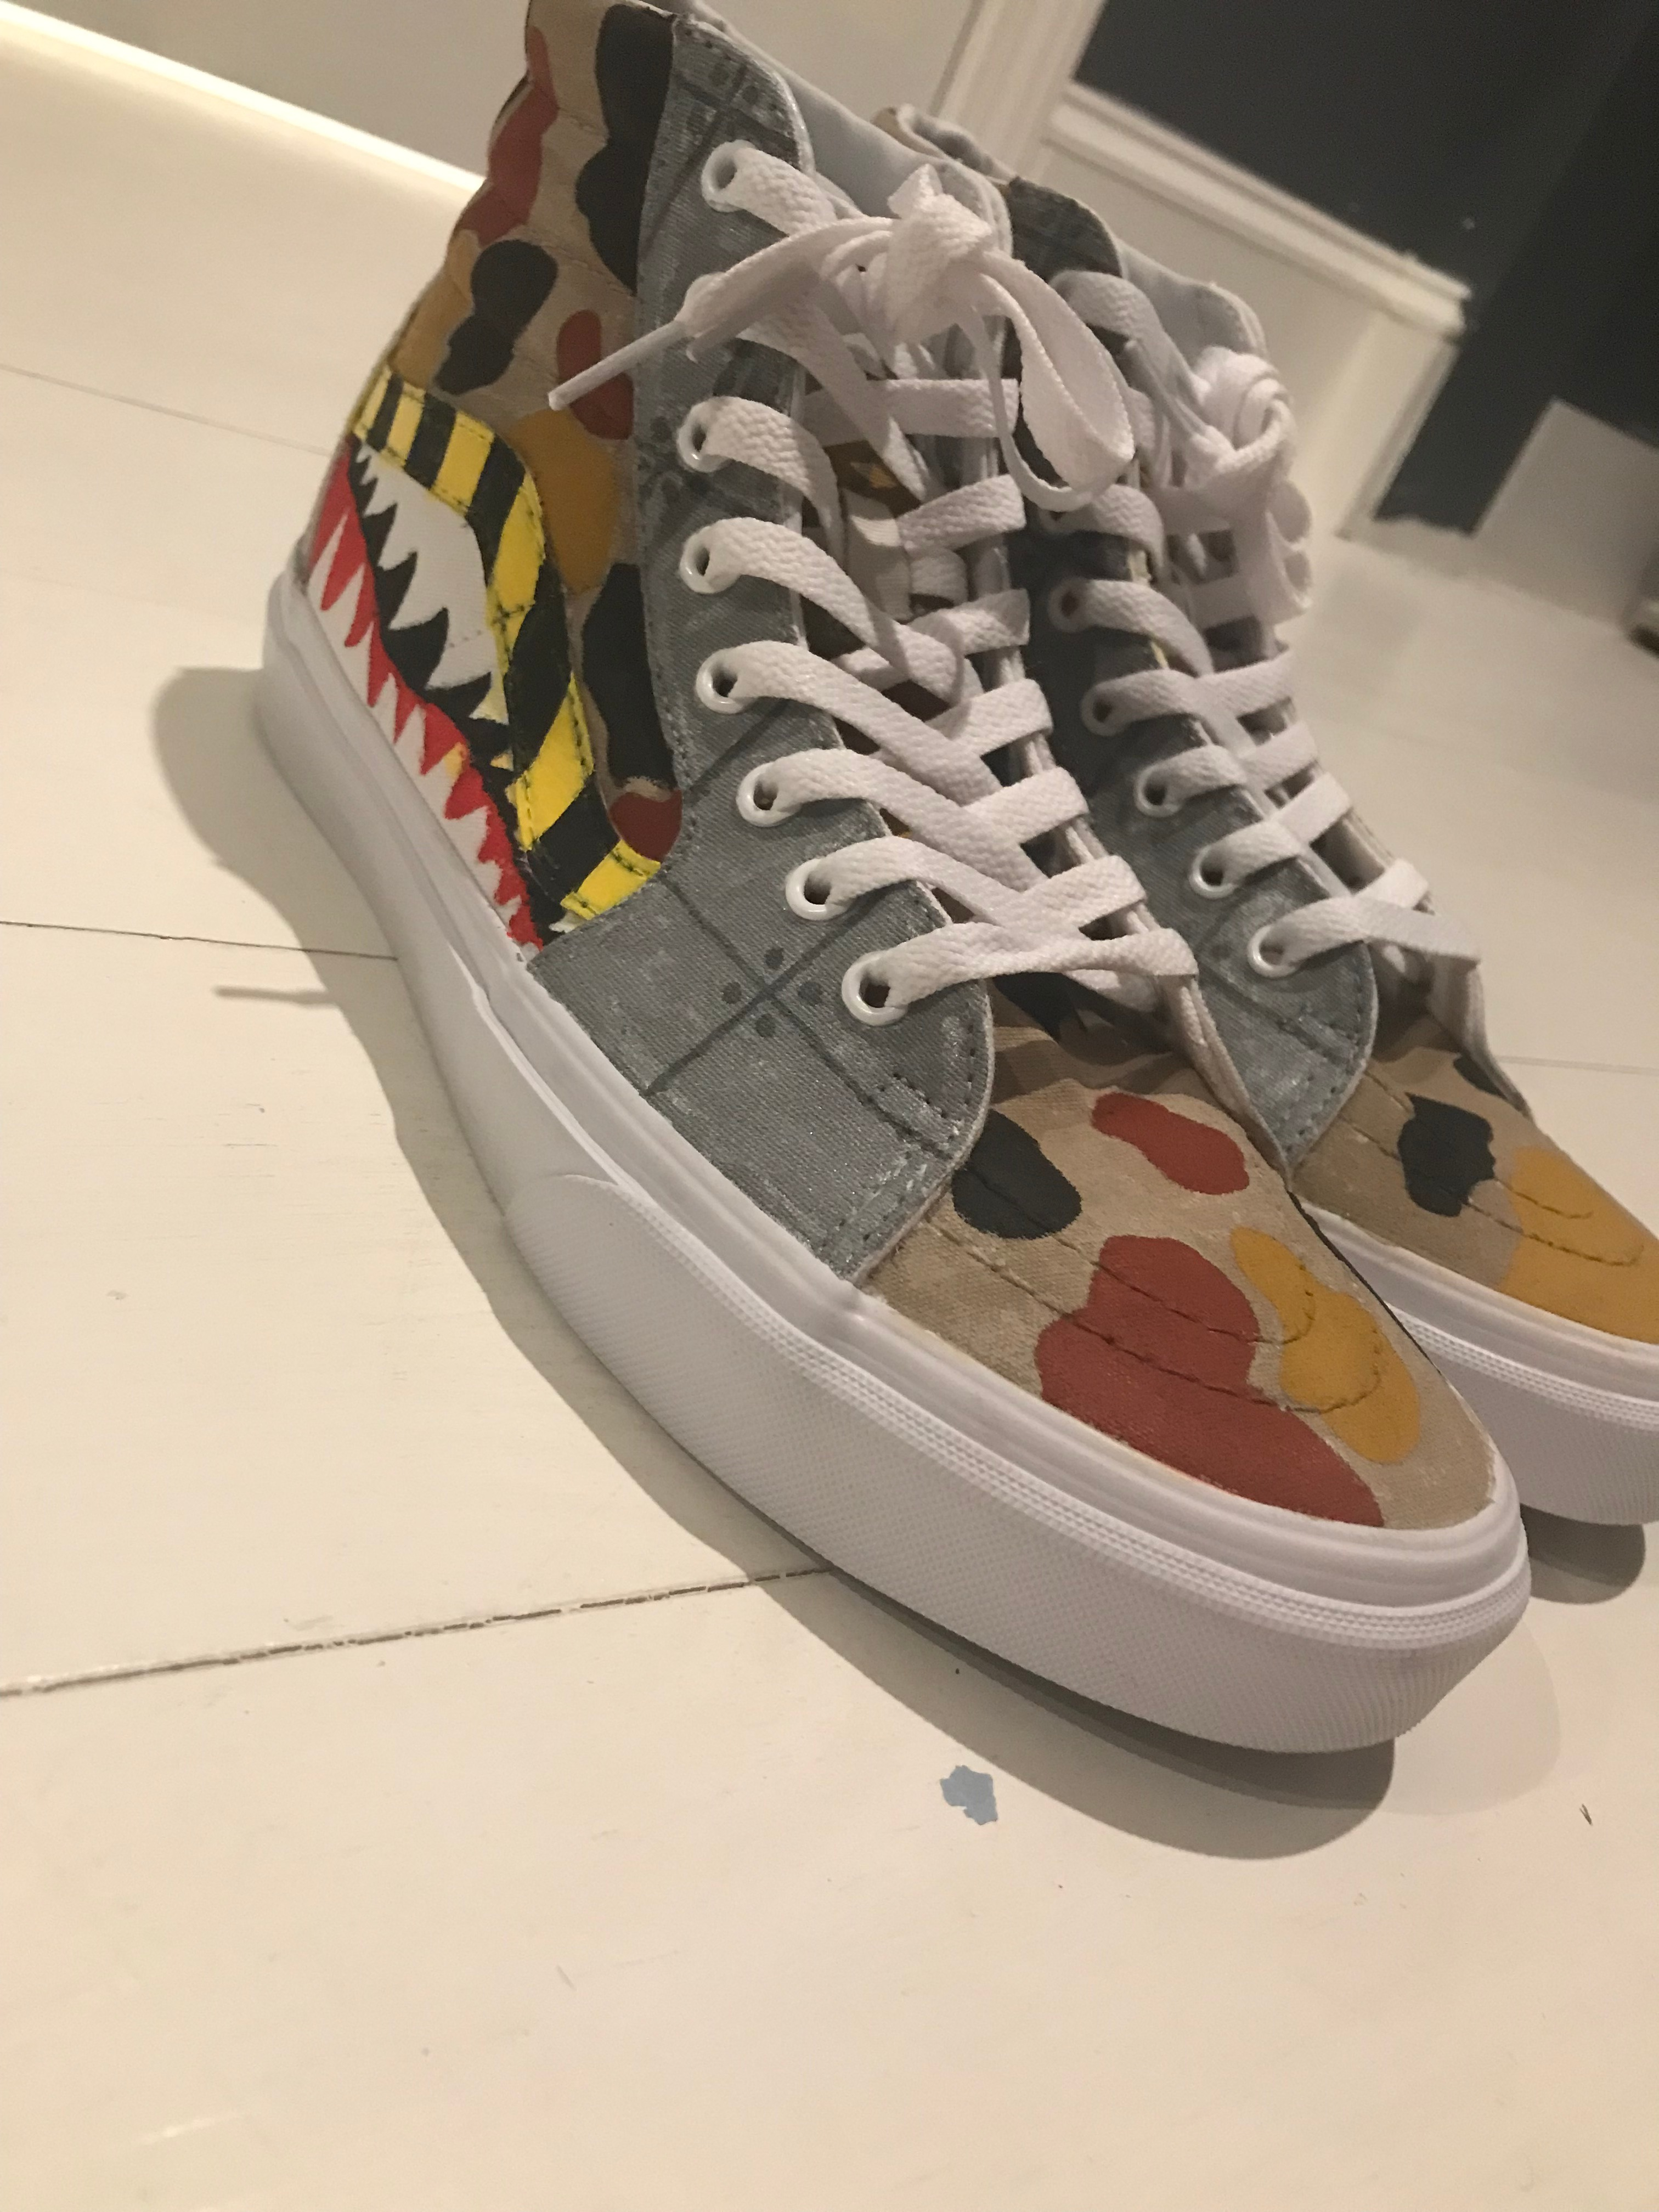 Picture of Custom Vans Shoes